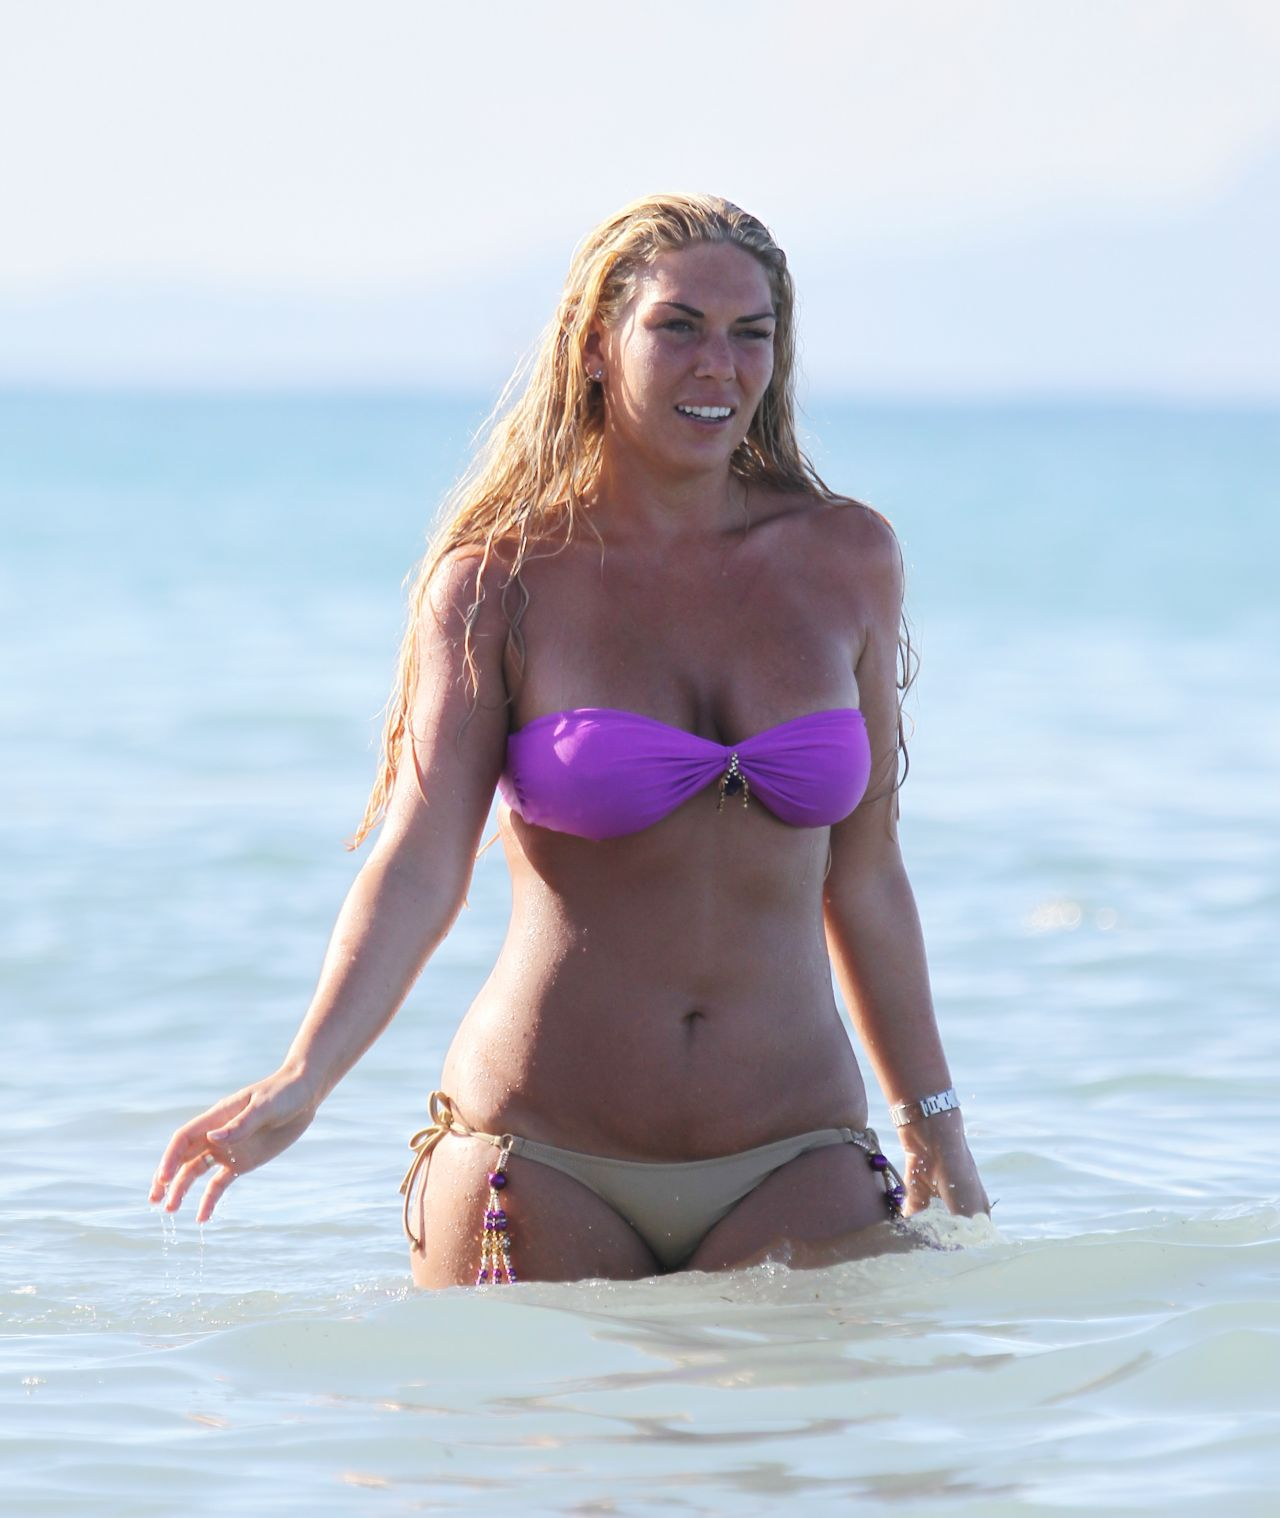 Frankie Essex in a Bikini on Holiday in Greece - April 2014